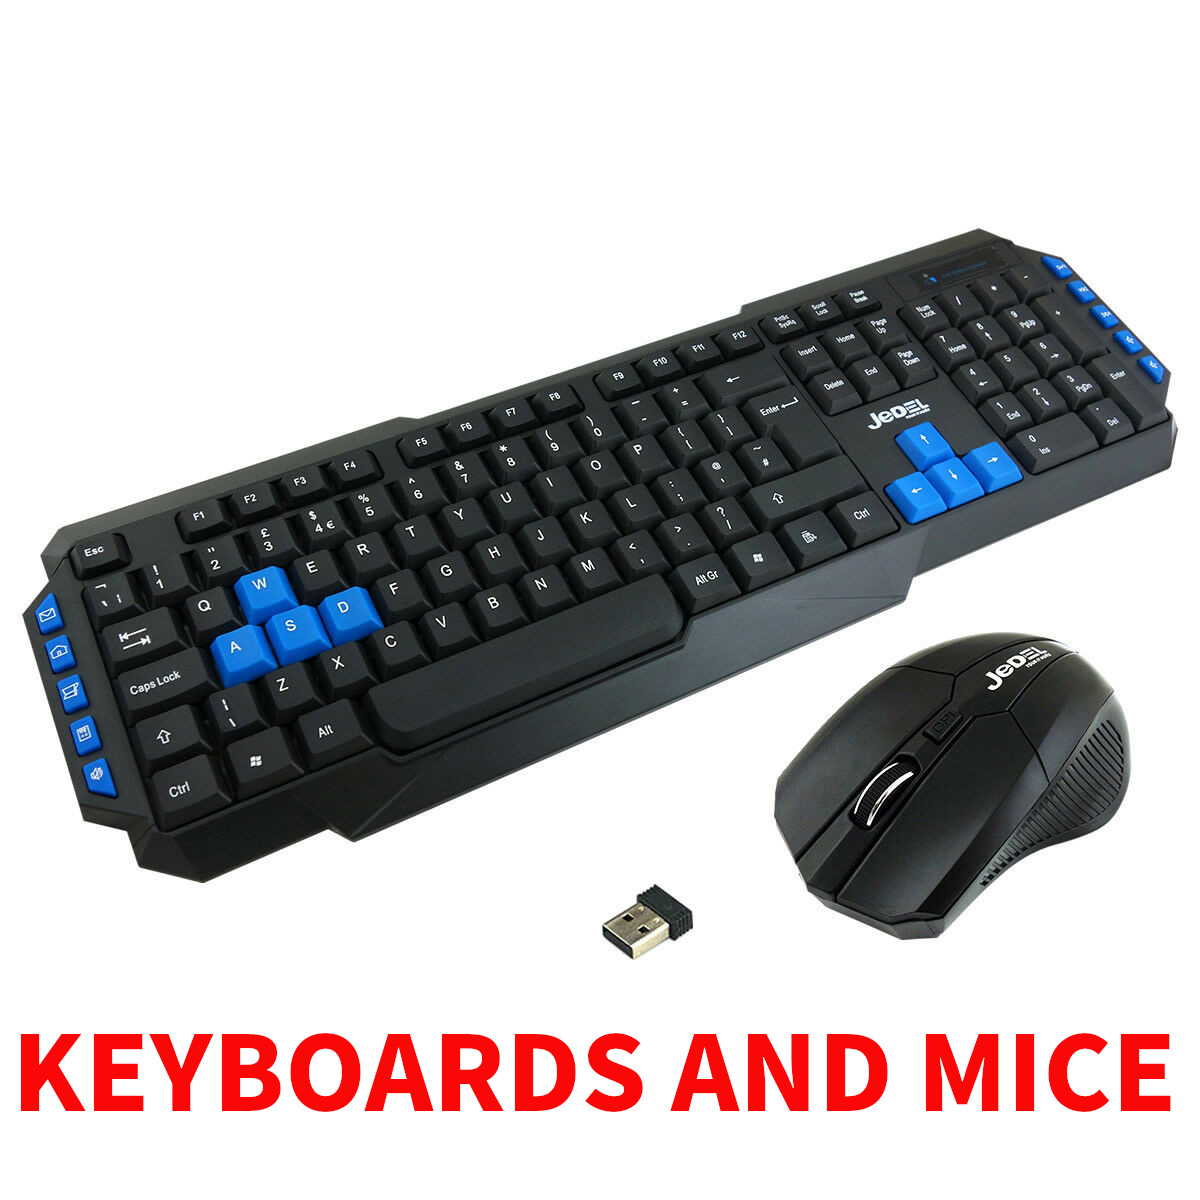 2.4GHz Ultra Slim USB Wireless Keyboard and Mouse PC Laptop Desk